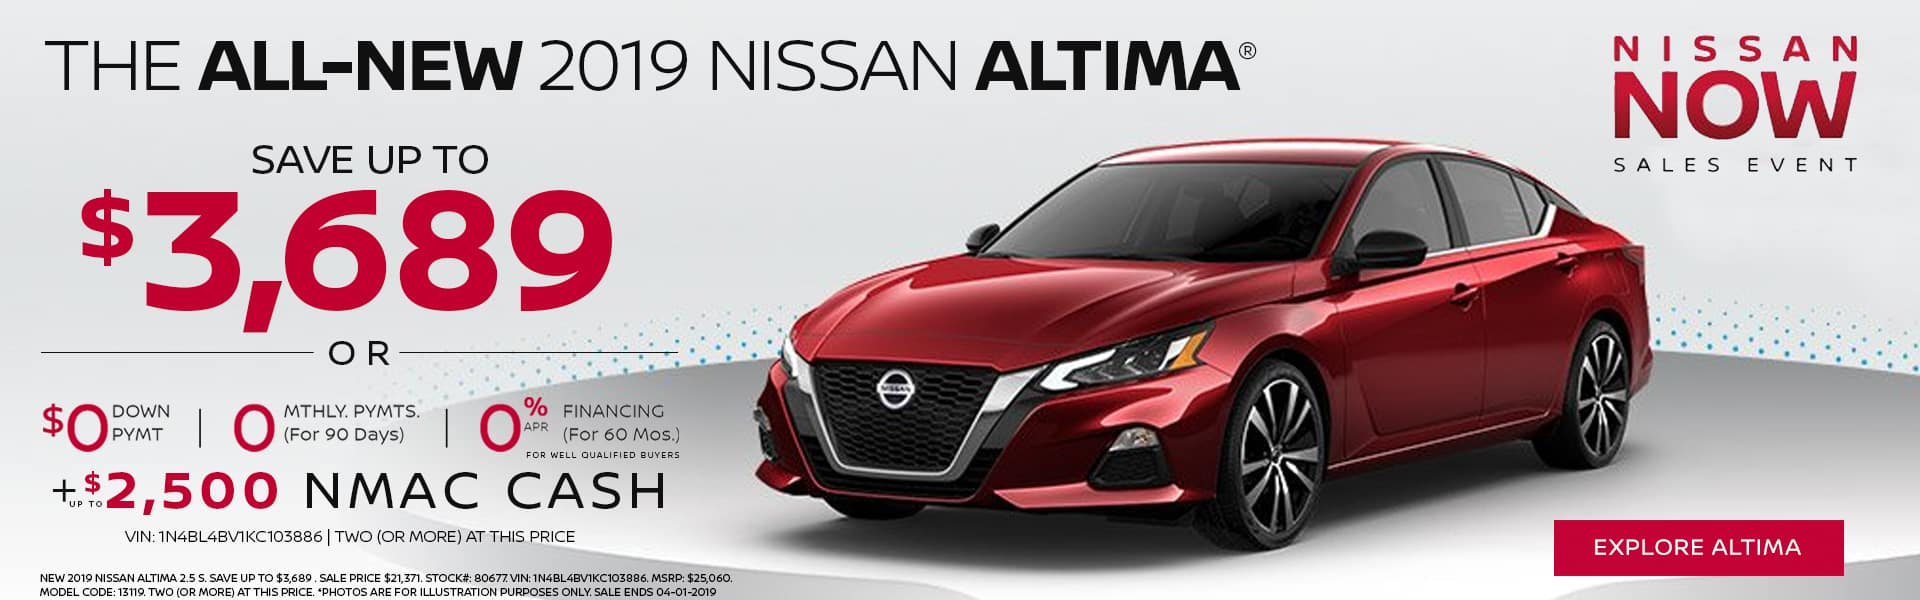 THE ALL-NEW 2019 NISSAN ALTIMA®